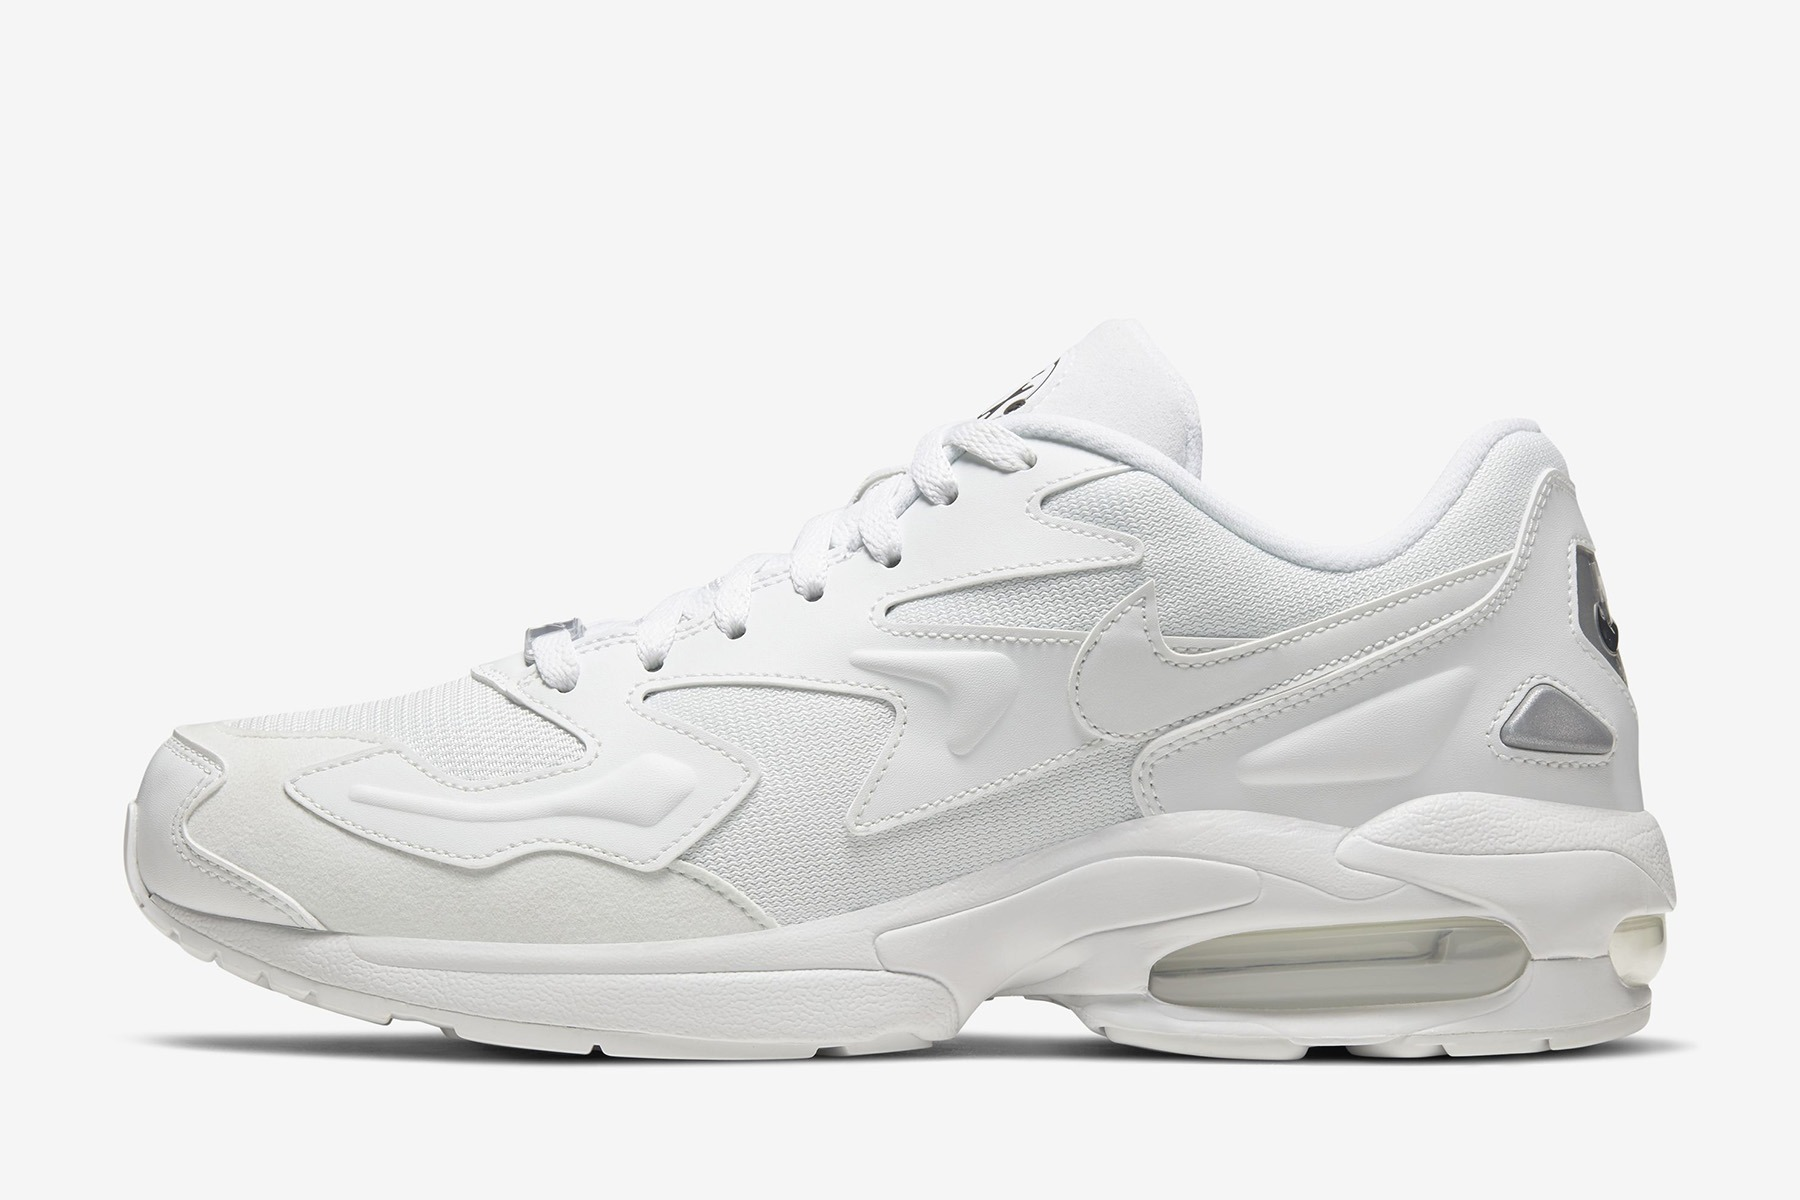 d0568caeb529c Every Air Max during the '90s introduced an innovation that hadn't been  seen before on a shoe. When it was time for the Air Max2 Light, the dual  pressure ...